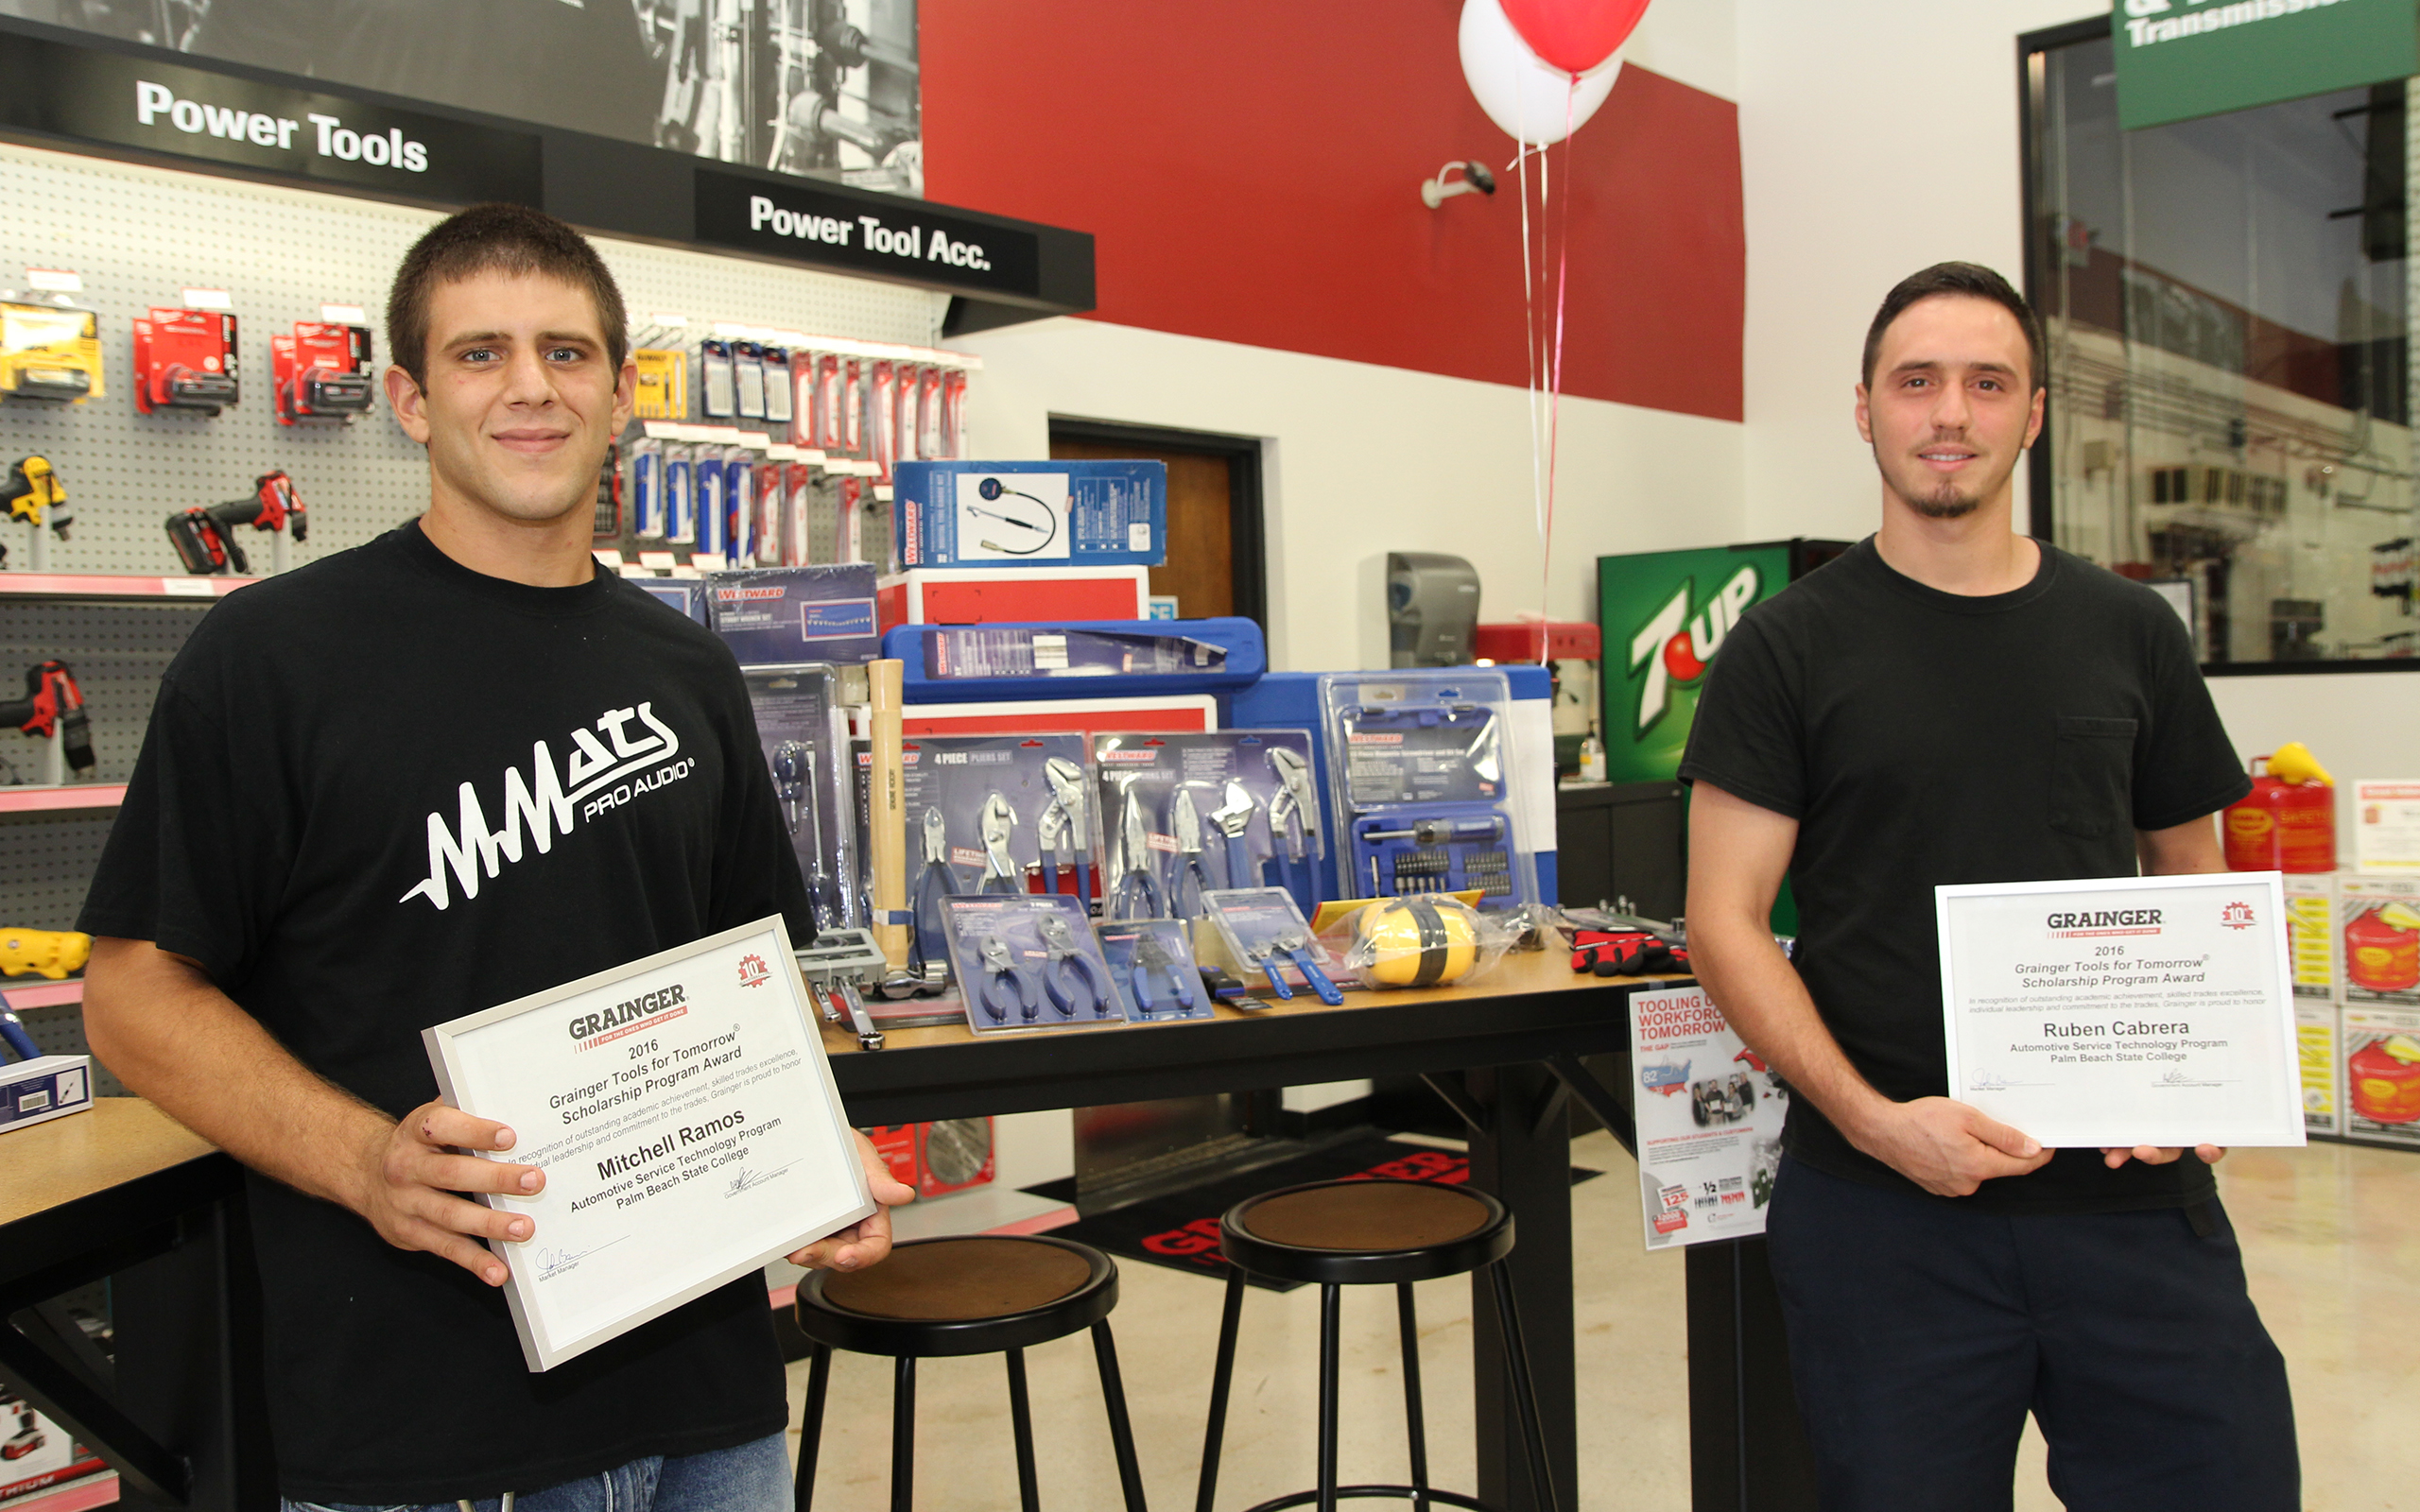 Mitchell Ramos and Ruben Cabrera, Grainger Tools for Tomorrow winners